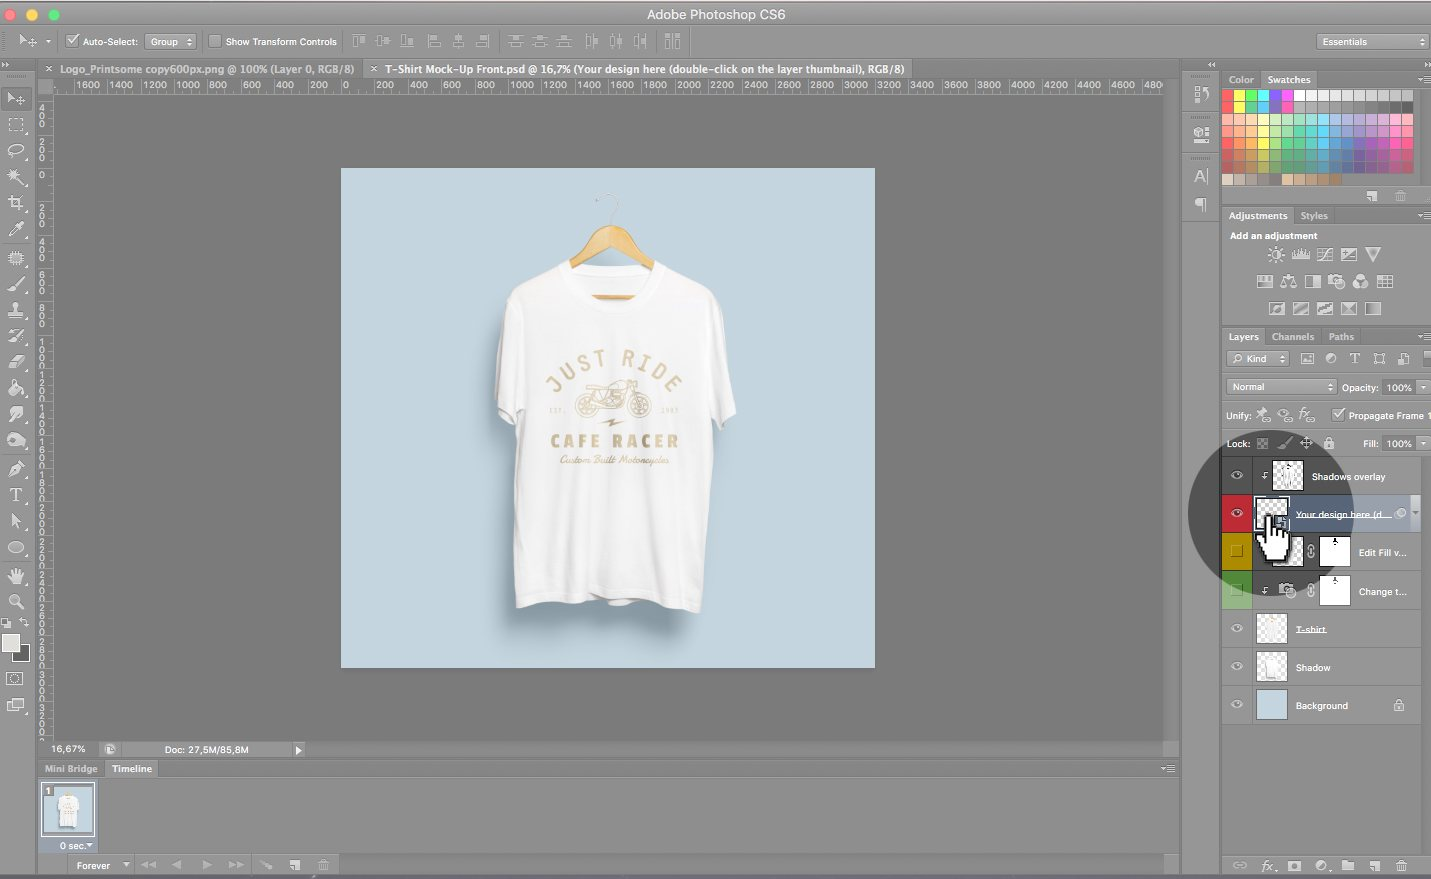 Design T Shirt Photoshop Cs6: How to use a T-Shirt template on Photoshop the right wayrh:blog.printsome.com,Design